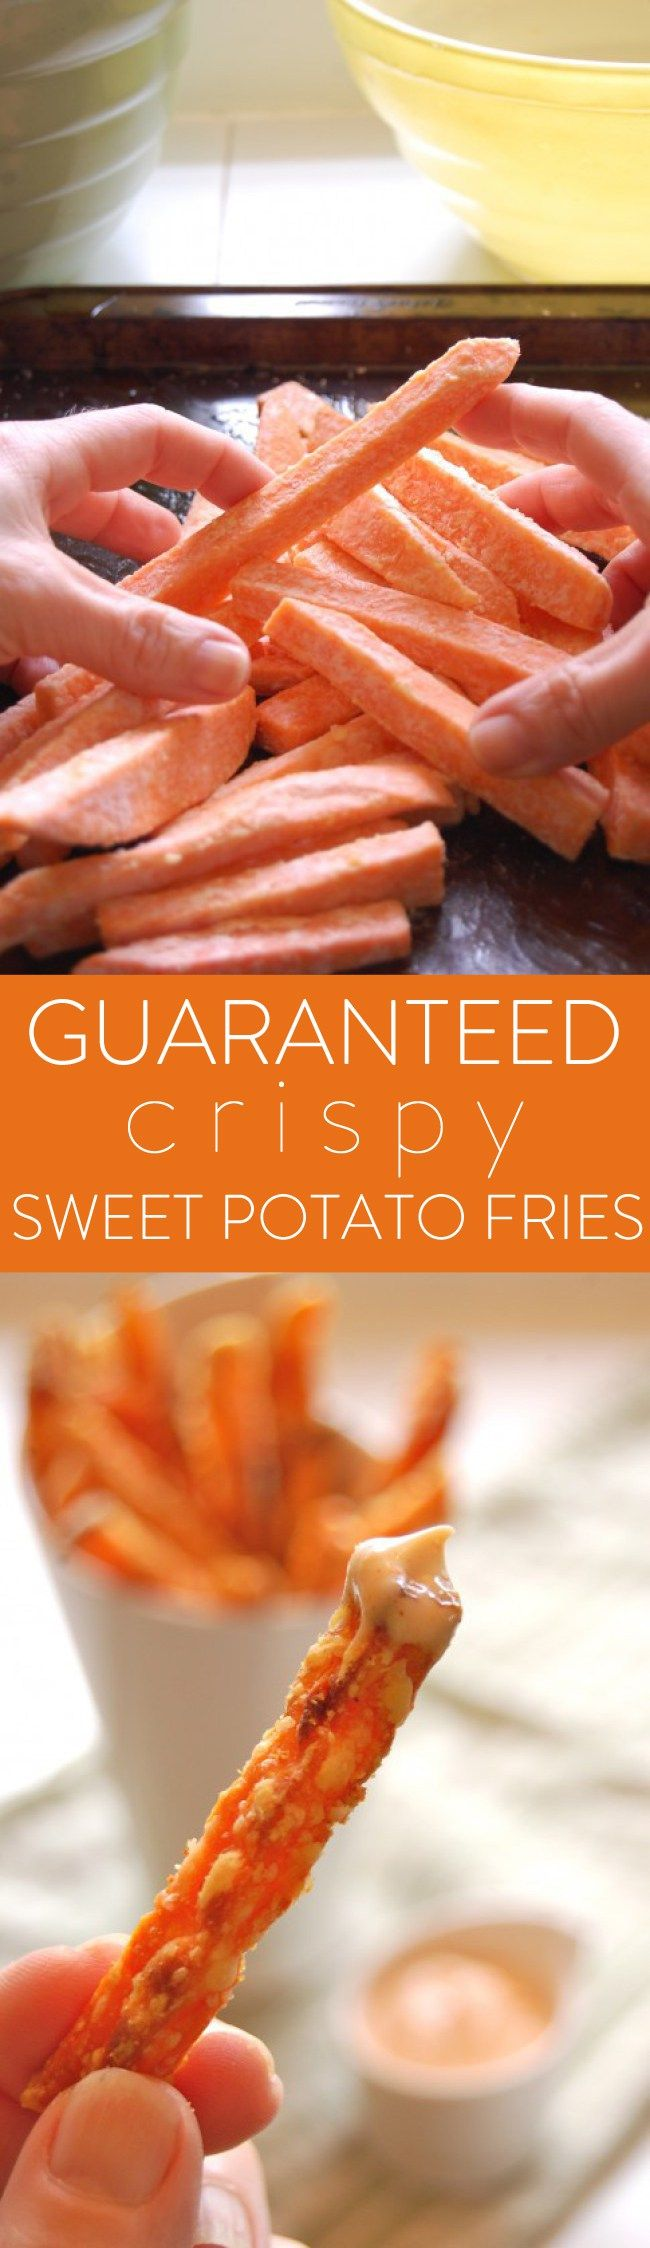 Guaranteed crispy sweet potato fries. No more mush in the mouth.